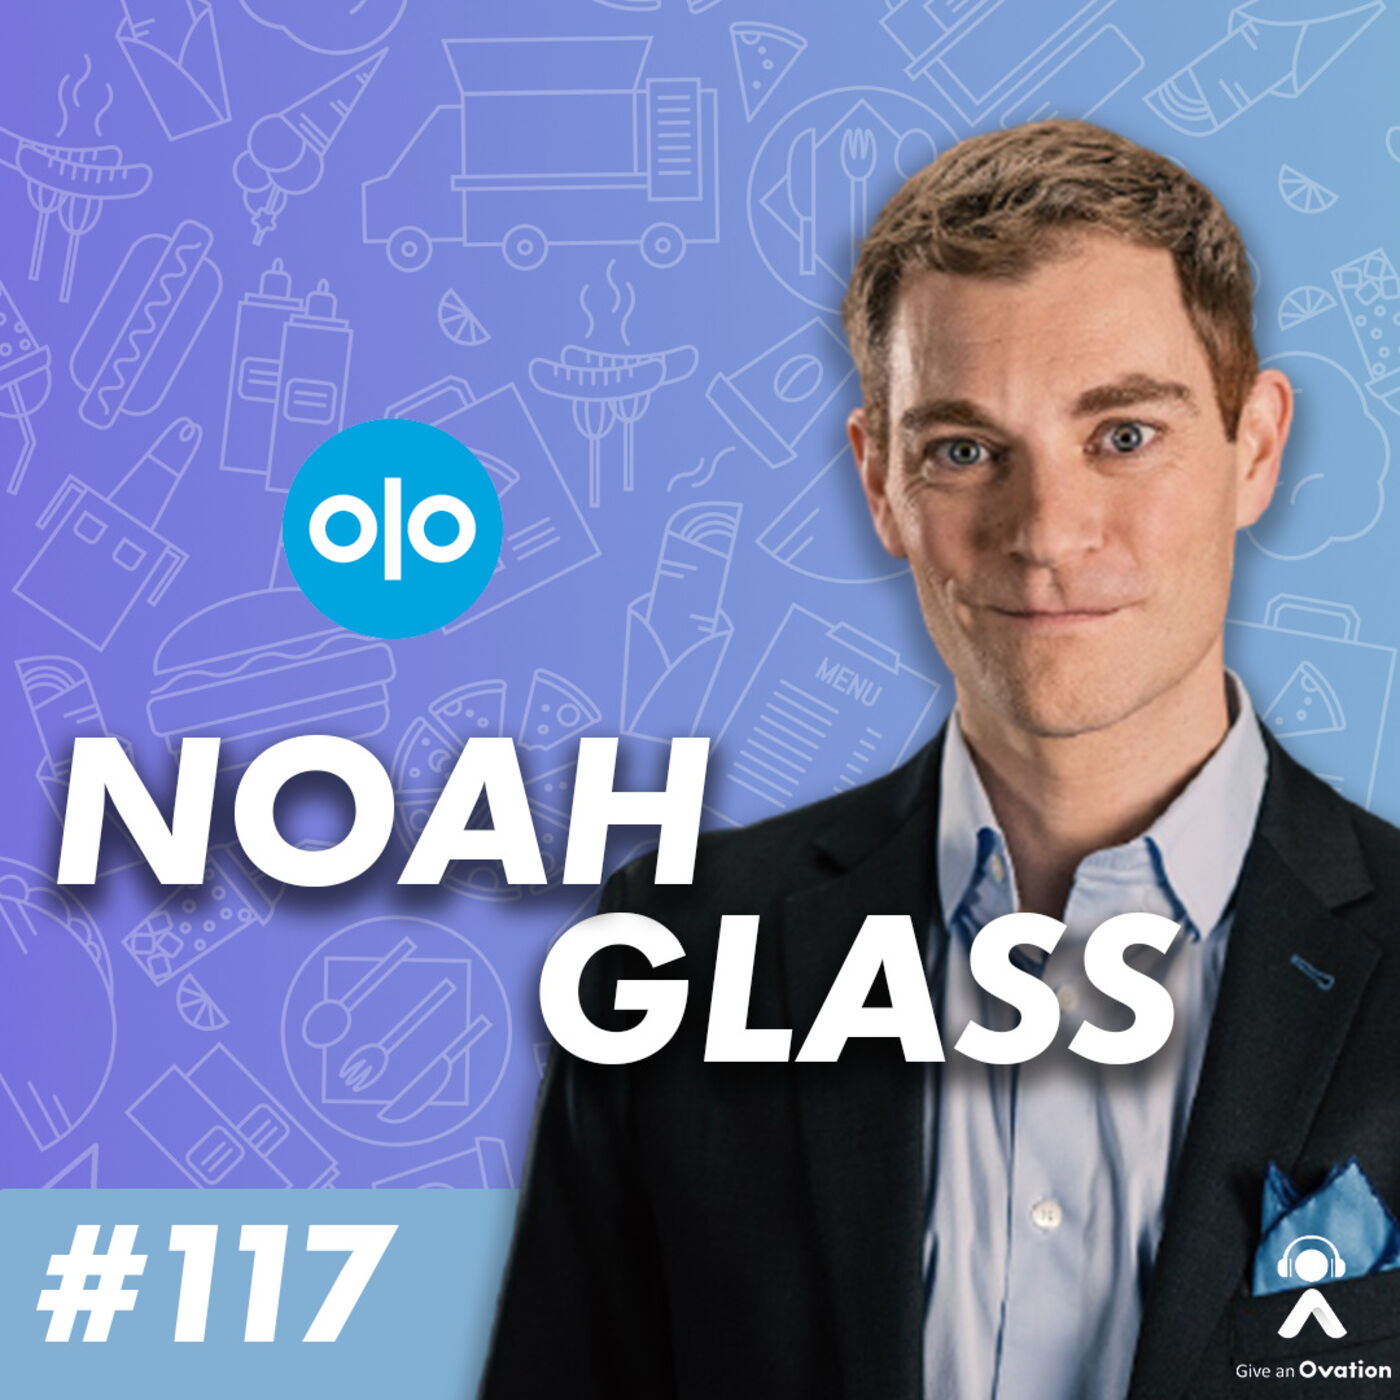 Delivering Hospitality At Scale with CEO of Olo, Noah Glass